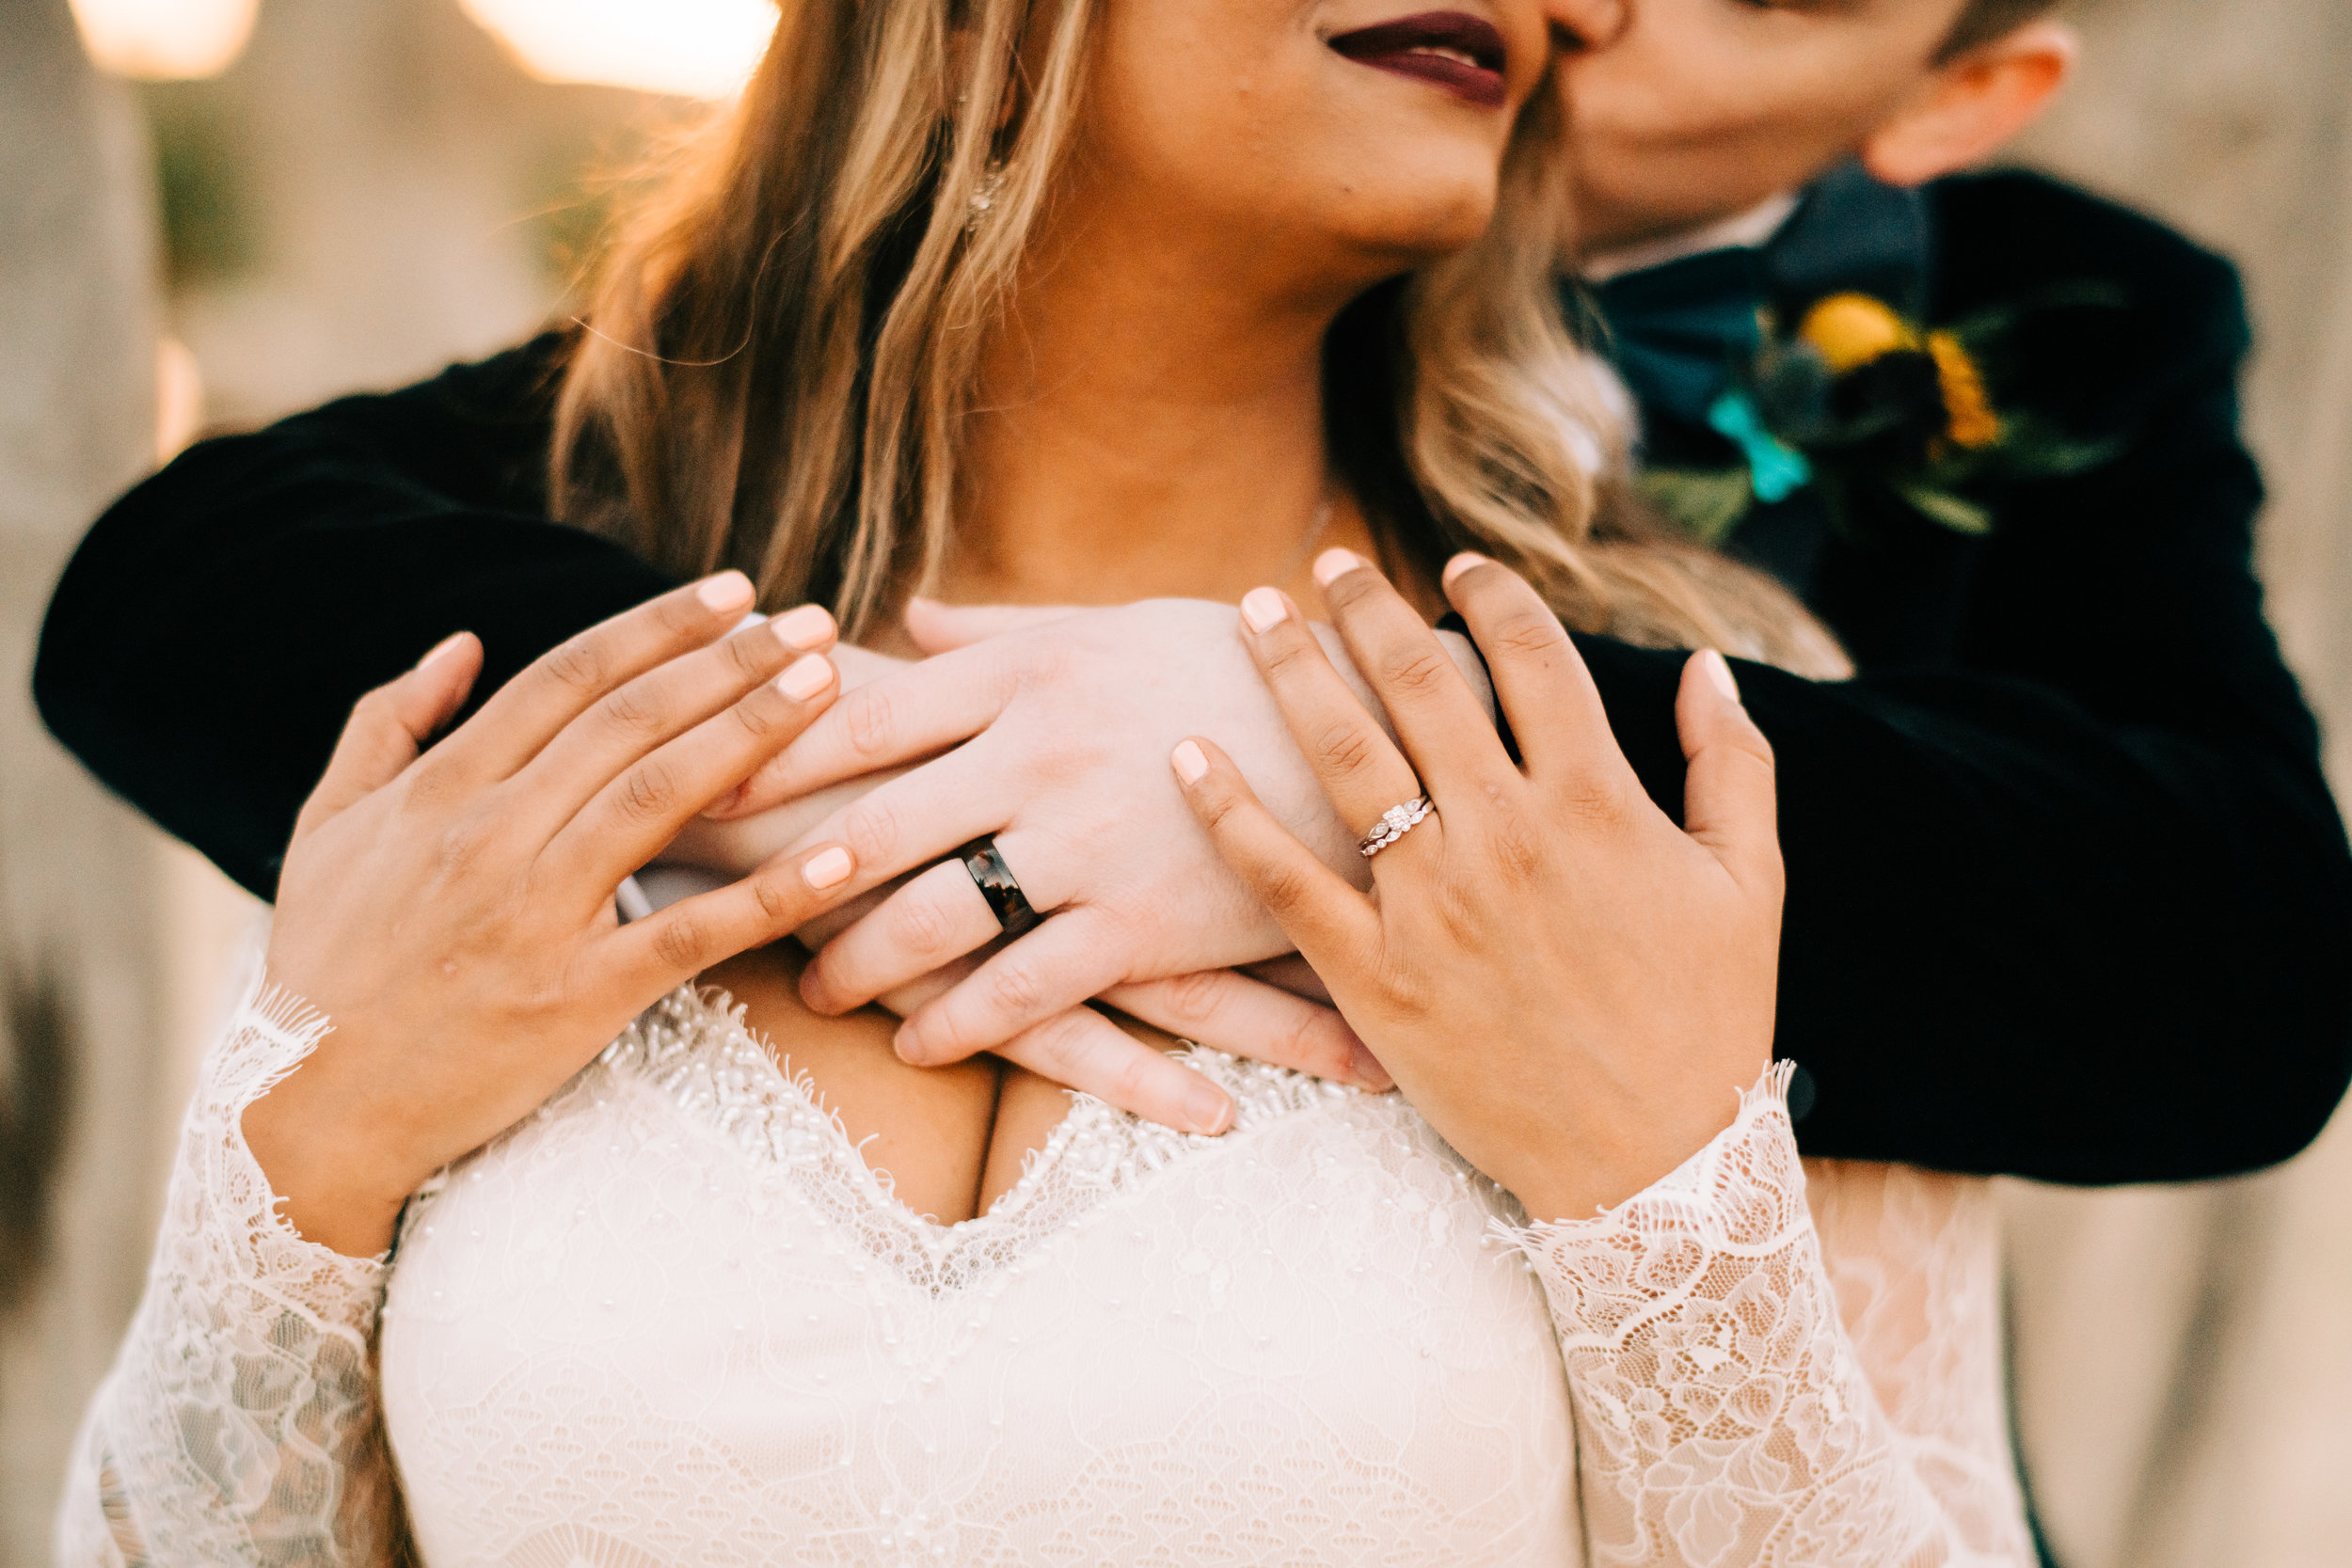 bay area nontraditional wedding photographer southern california boho wedding love light magic san francisco oakland northern california-979.jpg